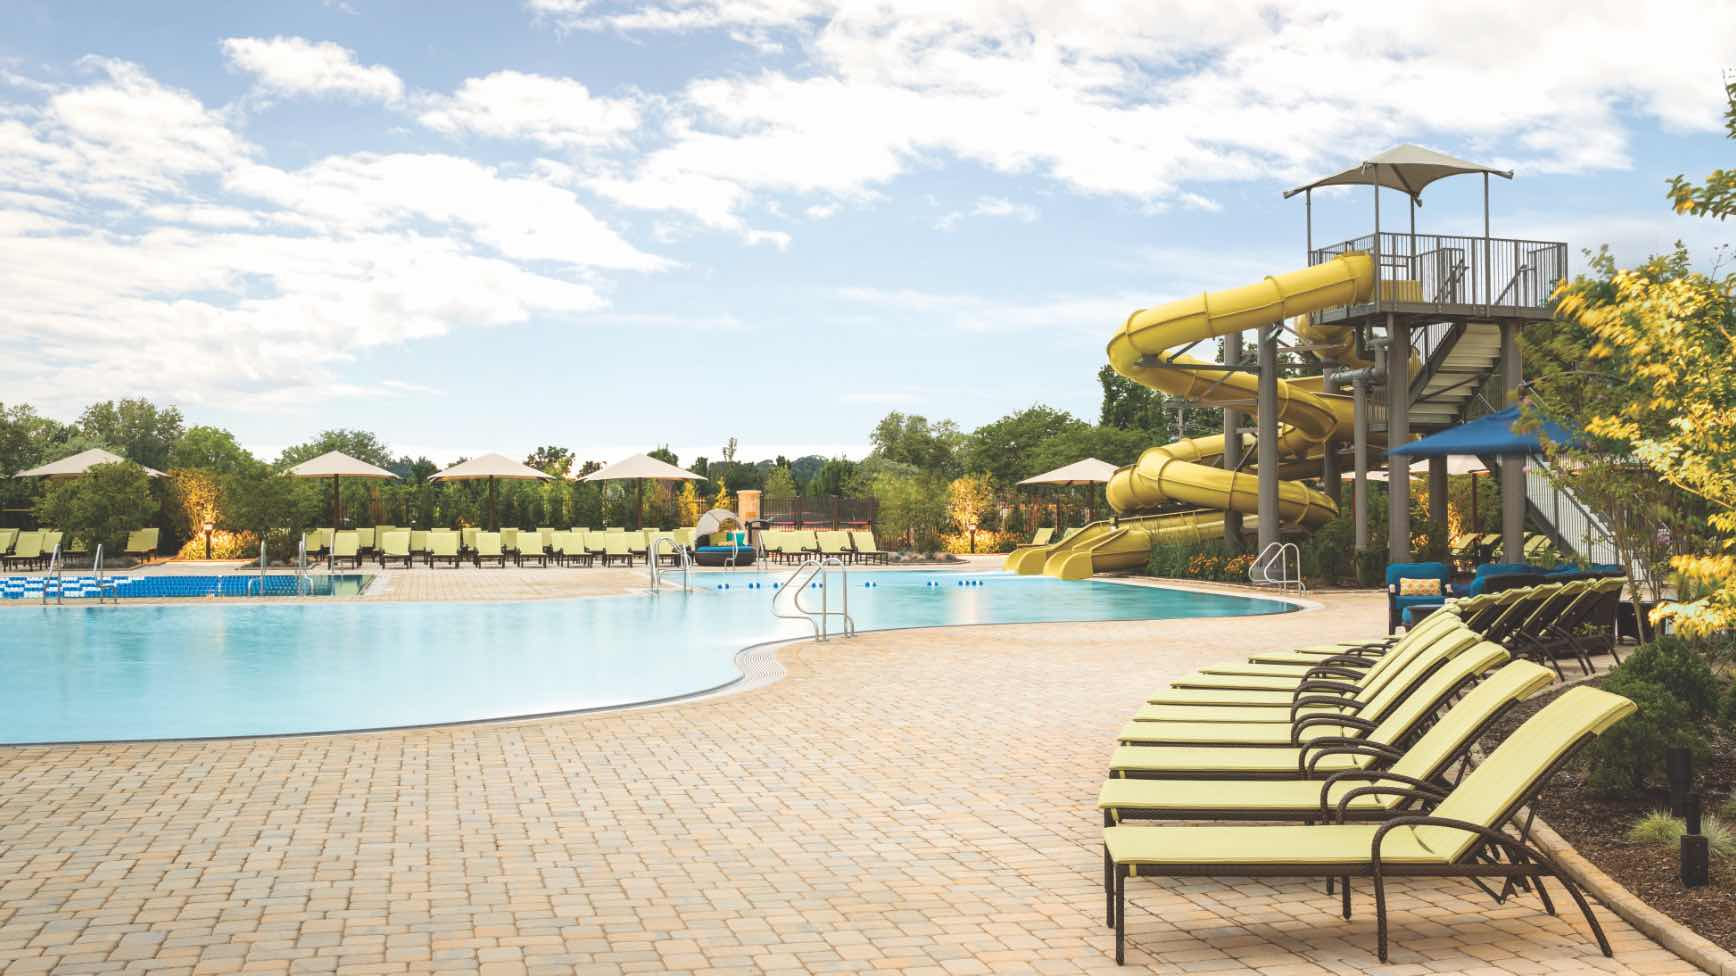 a row of lounge chairs by a leisure pool and water slides.